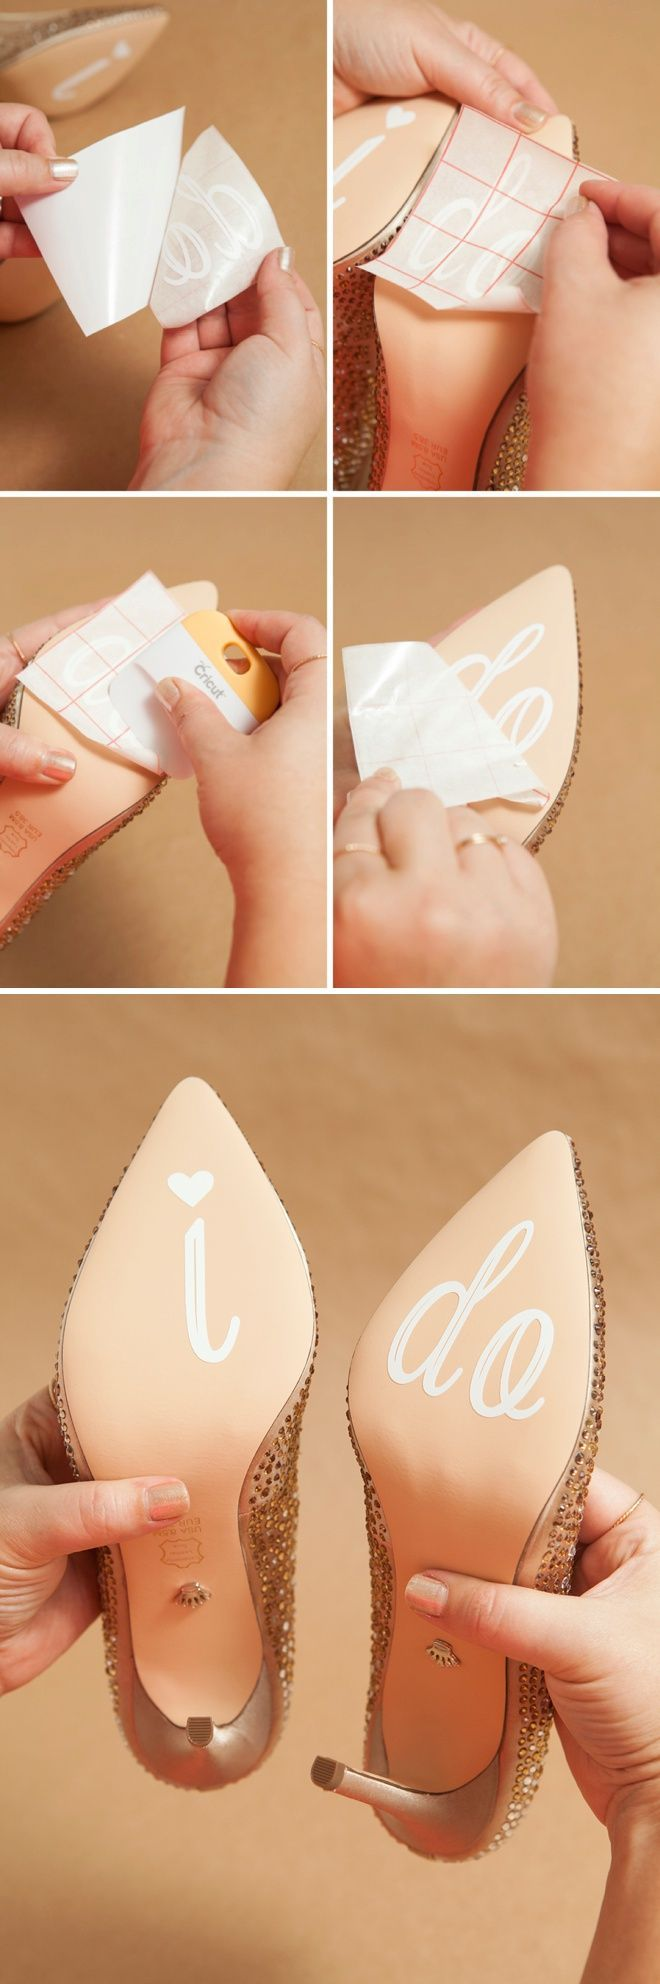 DIY Idea -- Learn how to make custom wedding shoe stickers. This will deferentially crack a few smiles within the memorable moment.